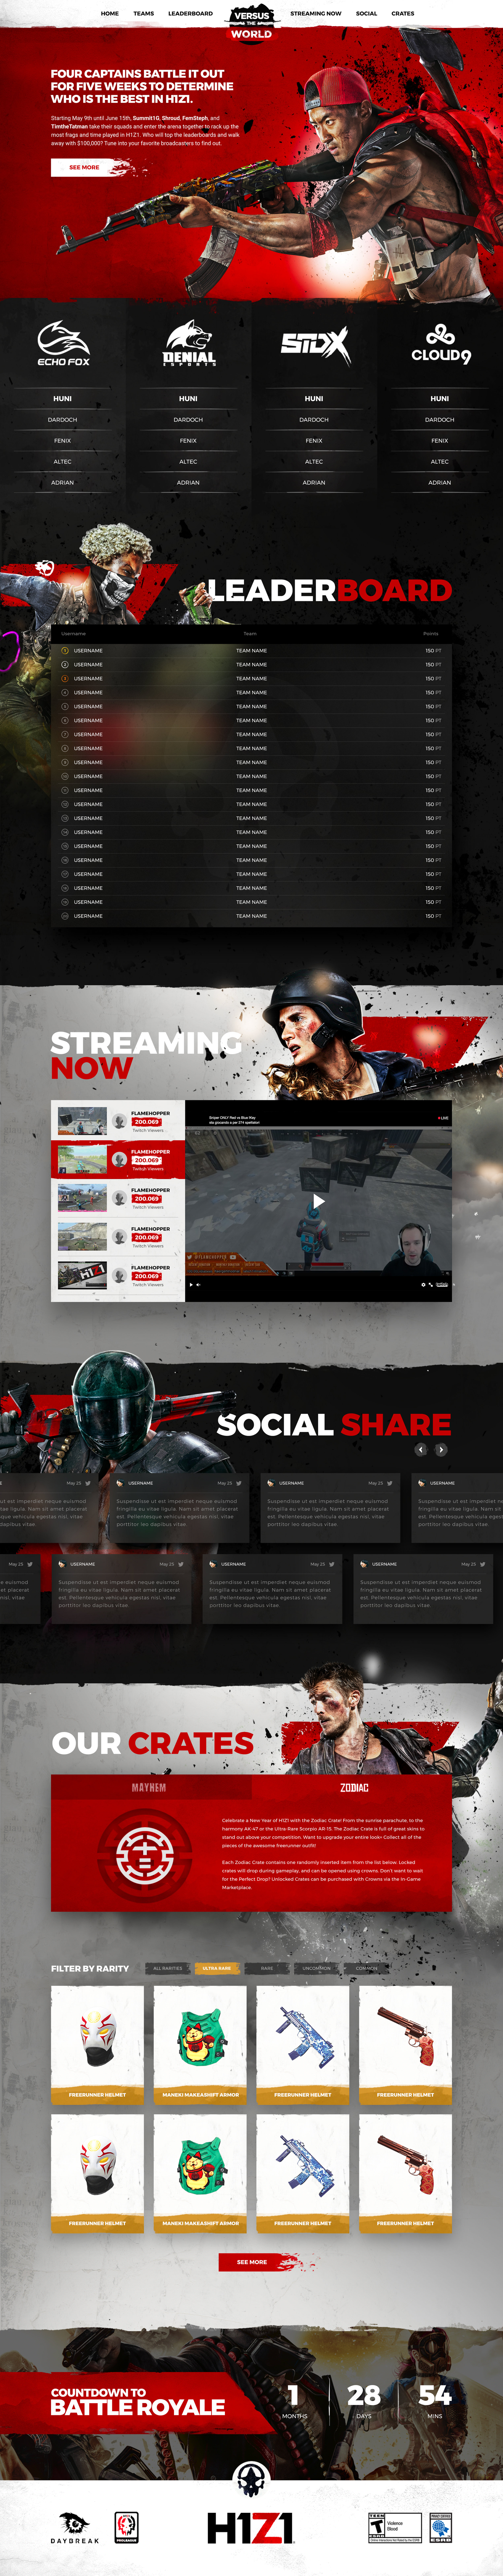 H1Z1 – Versus the World – Home Page Design Concept for Desktop